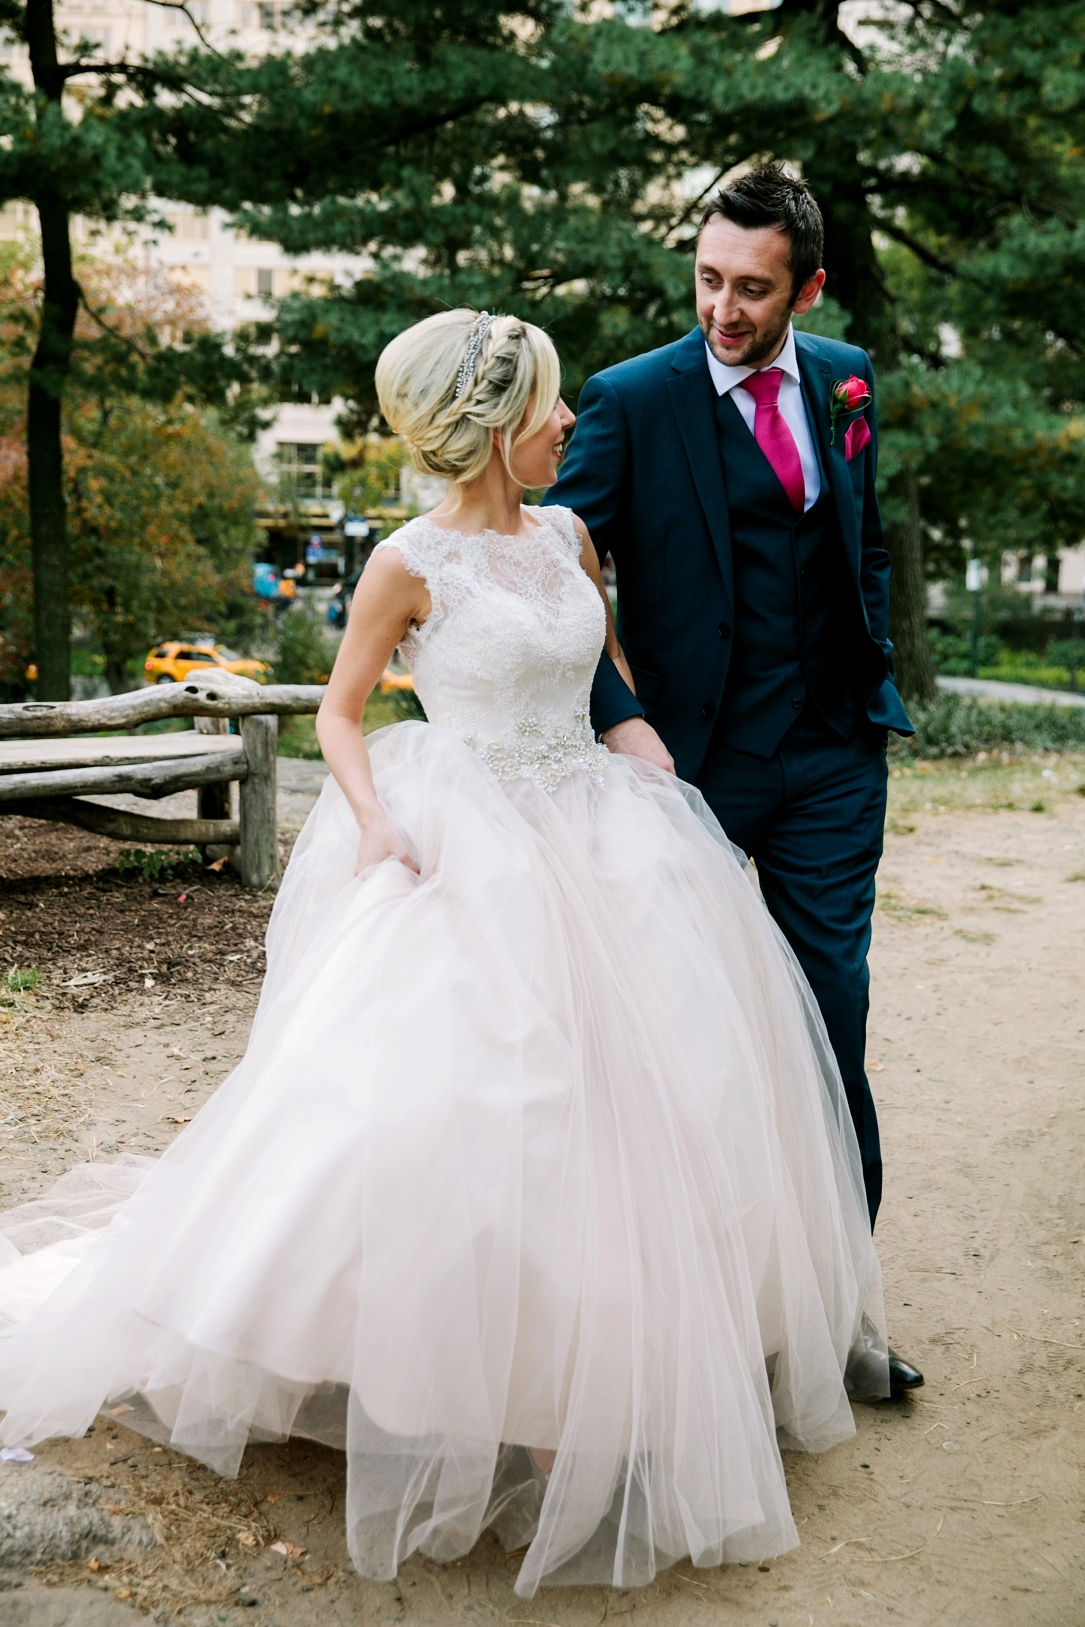 Copcot_centralpark_wedding_SR-208